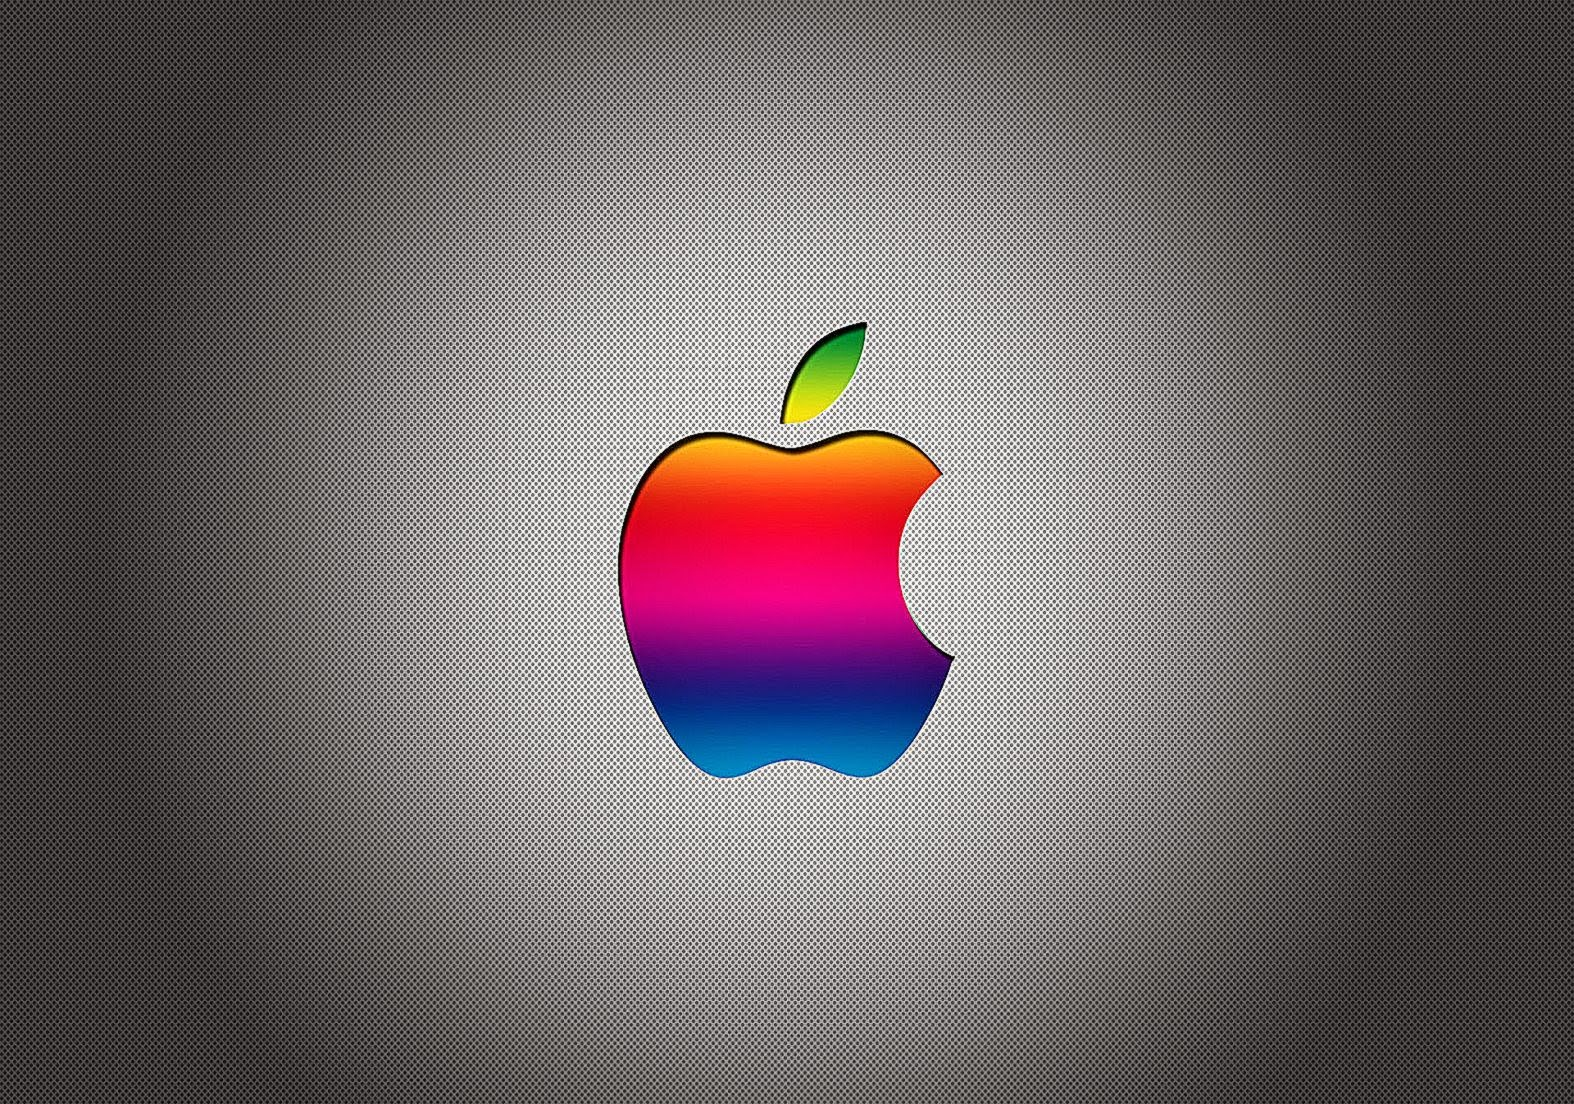 Apple Wallpaper High Resolution